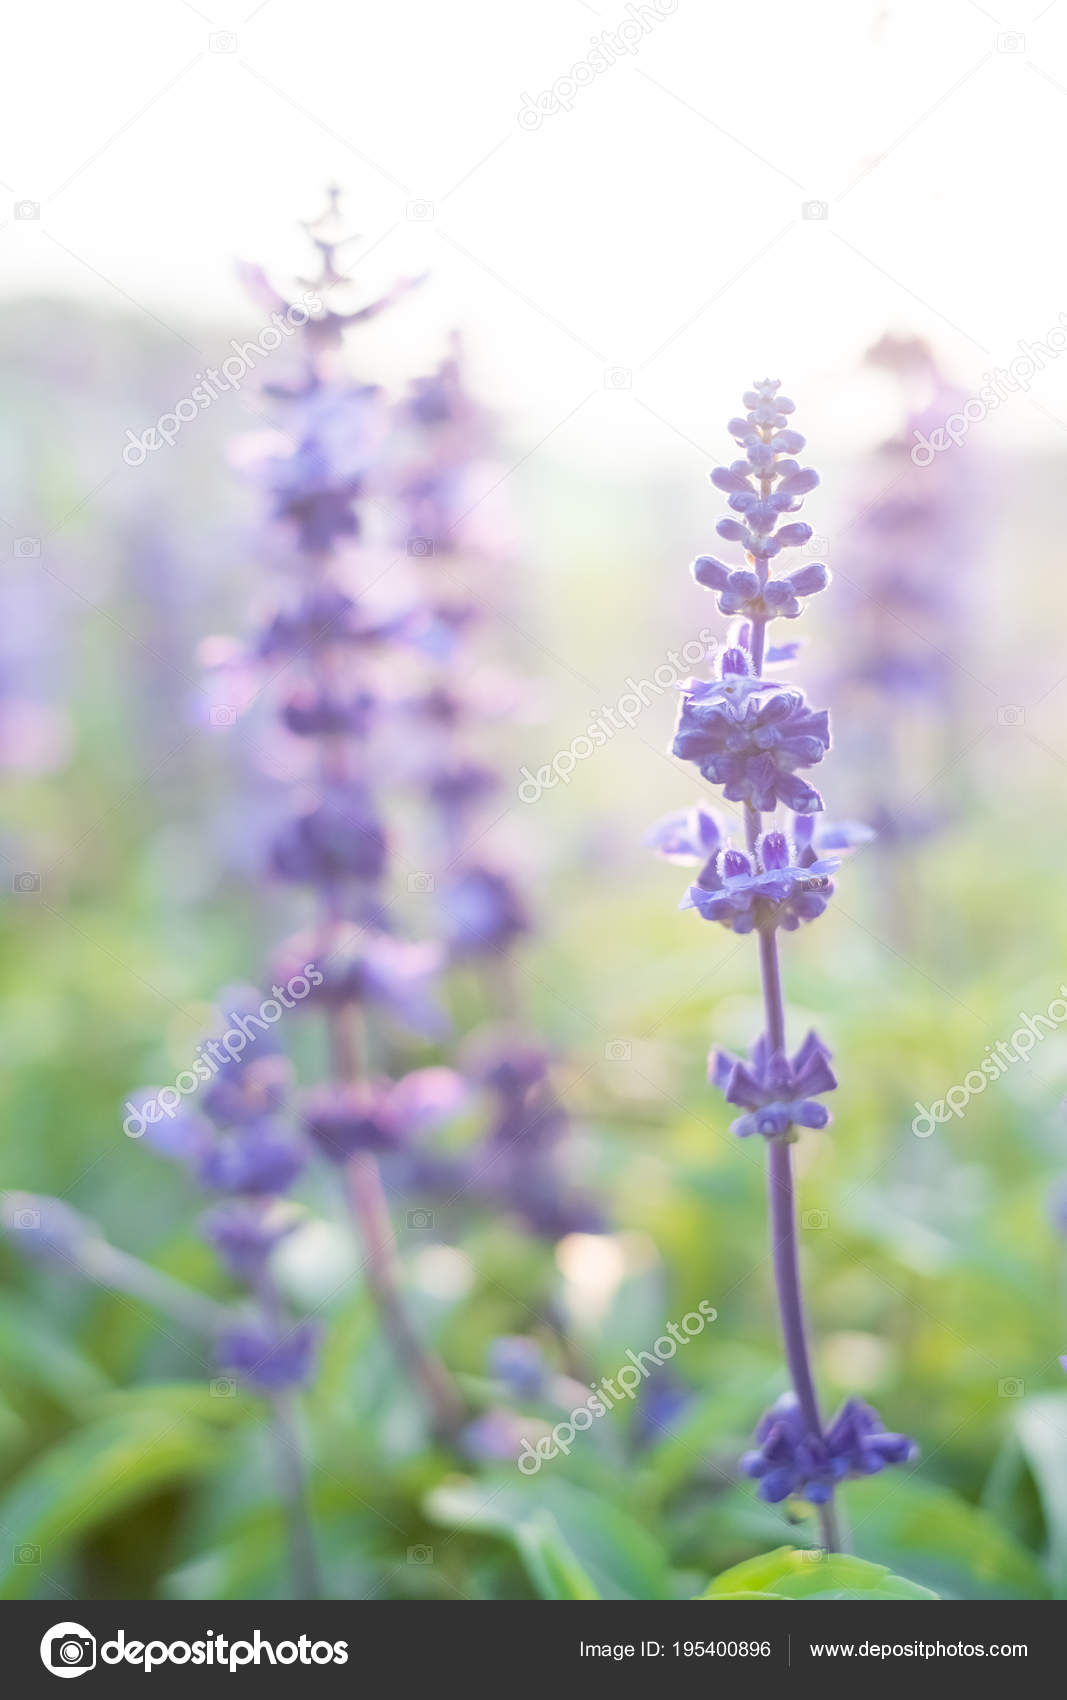 Close beautiful lavender flowers japan stock photo ryanking999 close beautiful lavender flowers japan stock photo izmirmasajfo